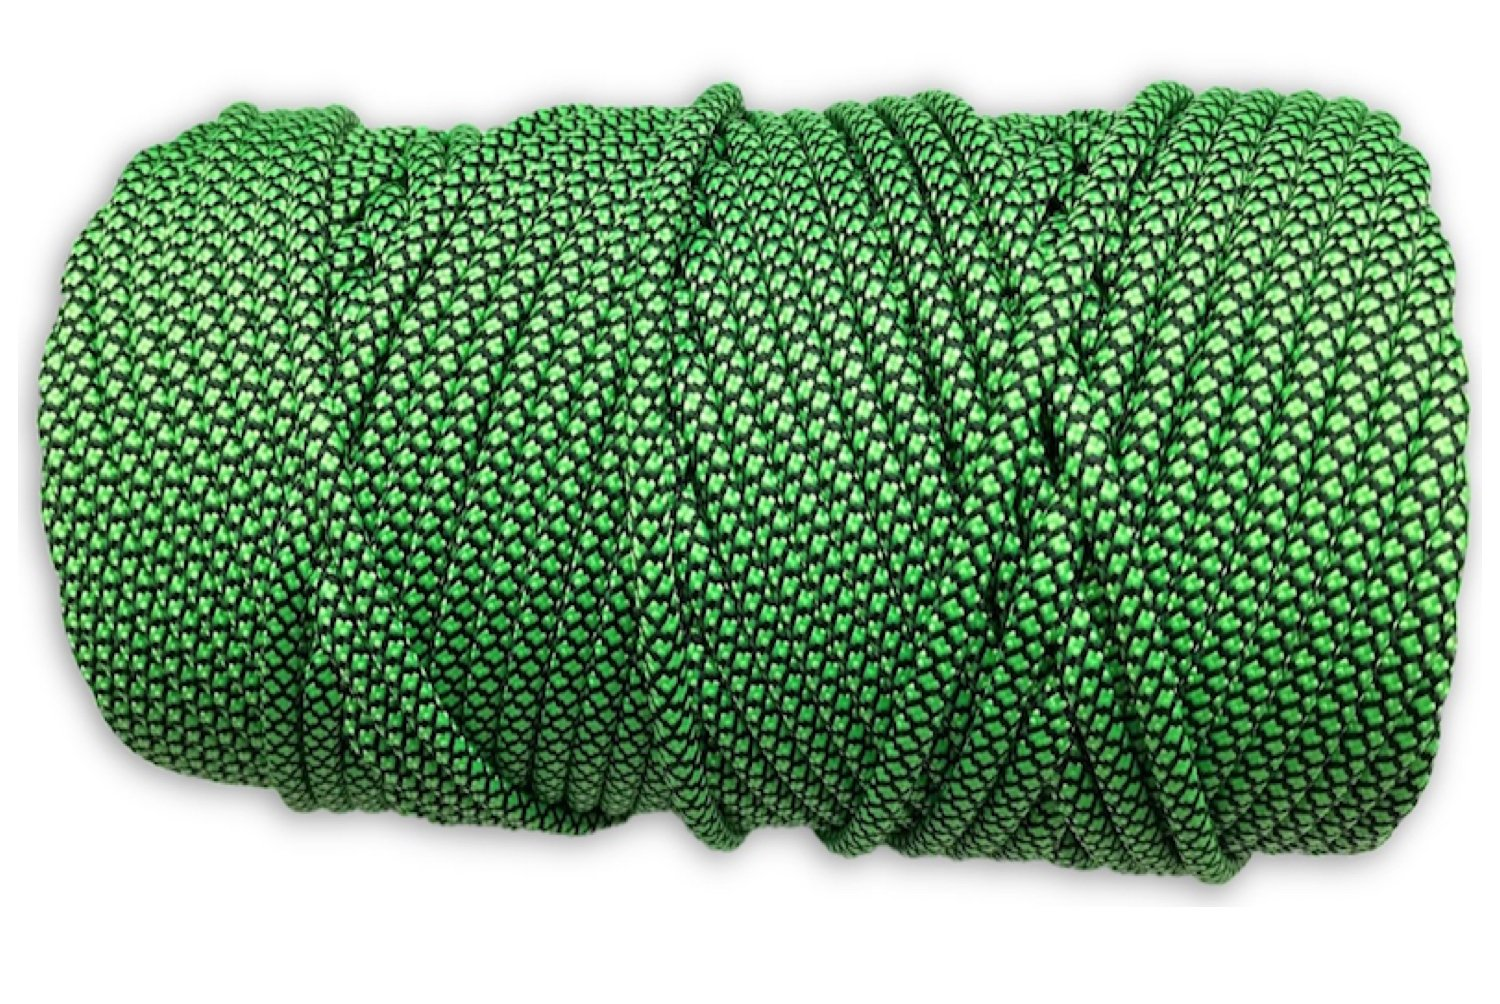 X-CORDS Paracord 850 Lb Stronger Than 550 and 750 Made by Us Government Certified Contractor (200' Tube Zombie Green)